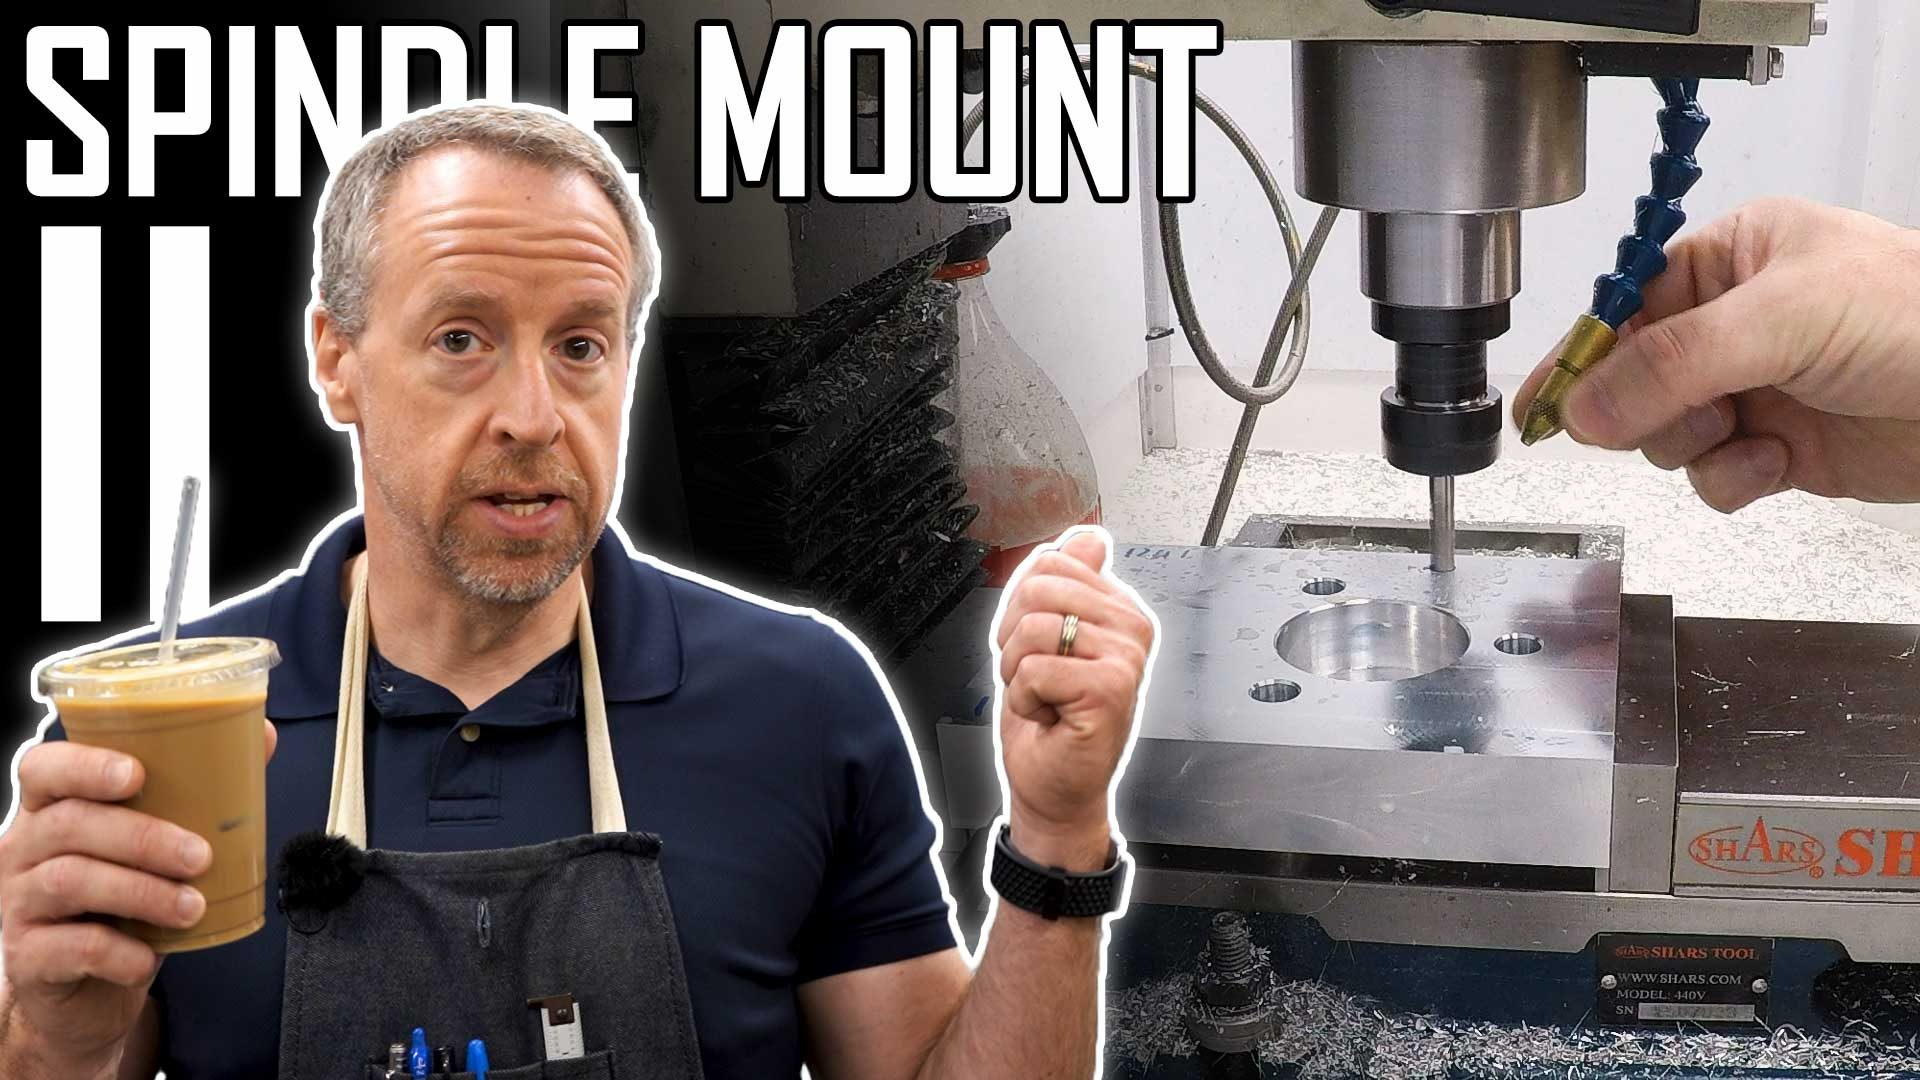 ATC Spindle Part 5: Making the Spindle Mount II